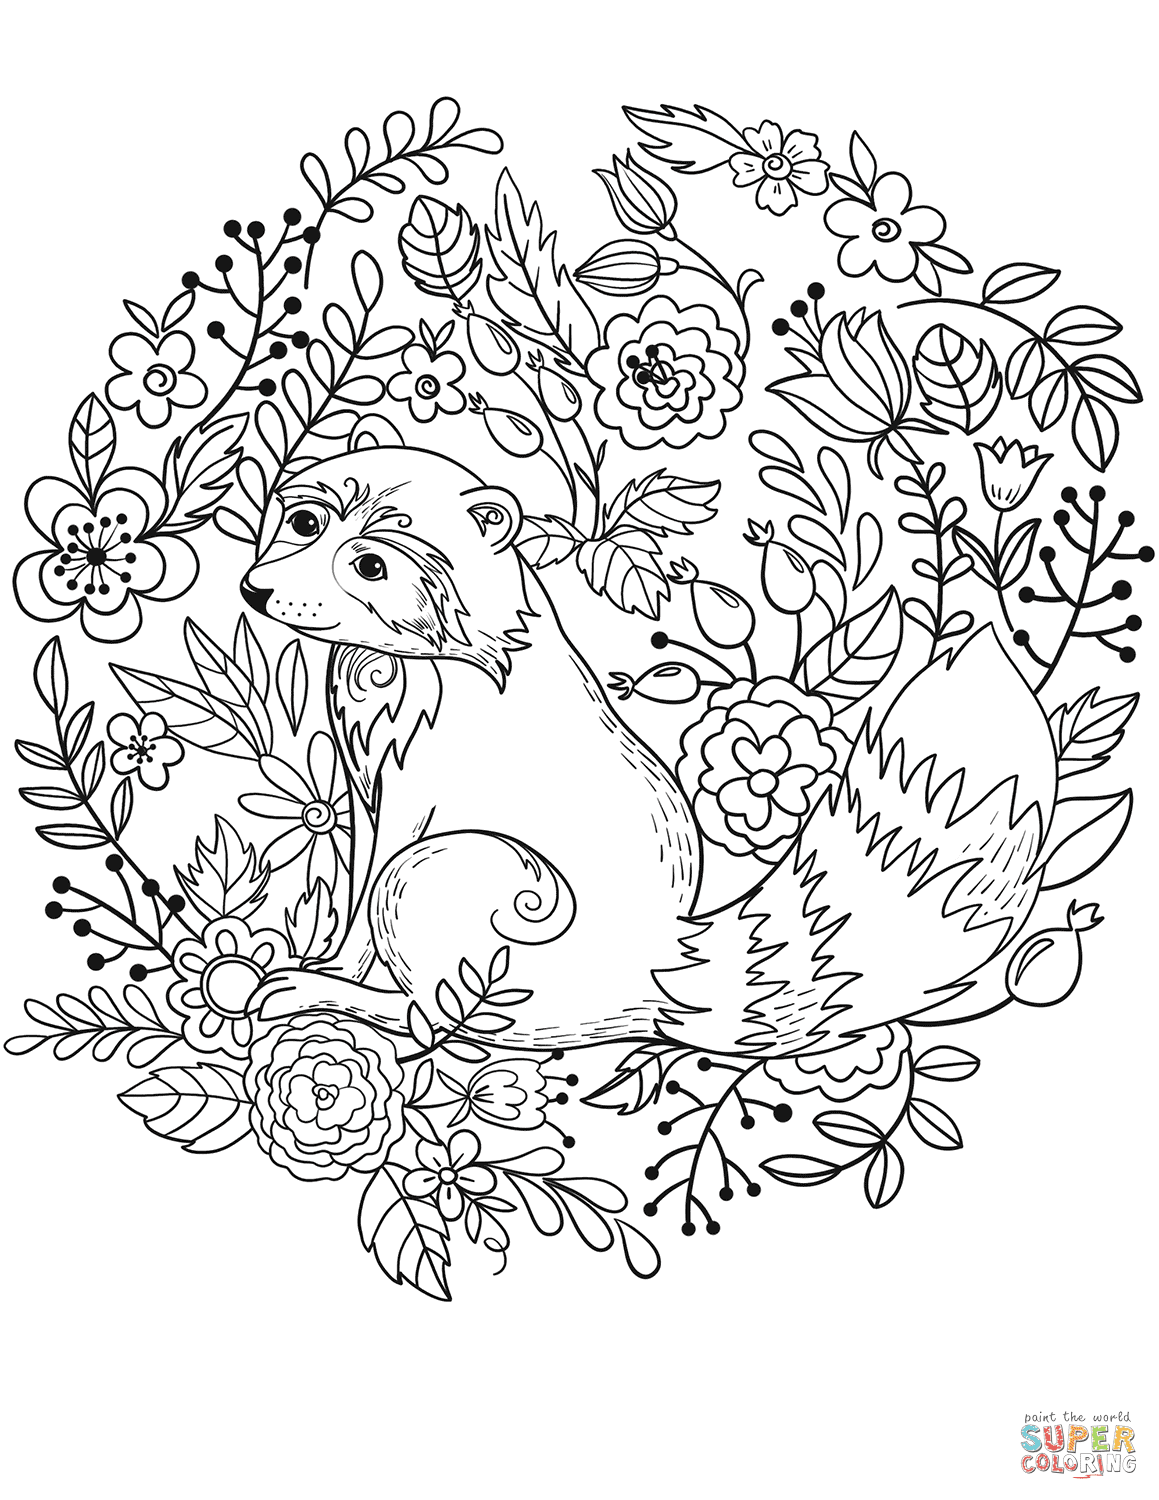 Racoon Coloring Page Coloringnori Coloring Pages For Kids